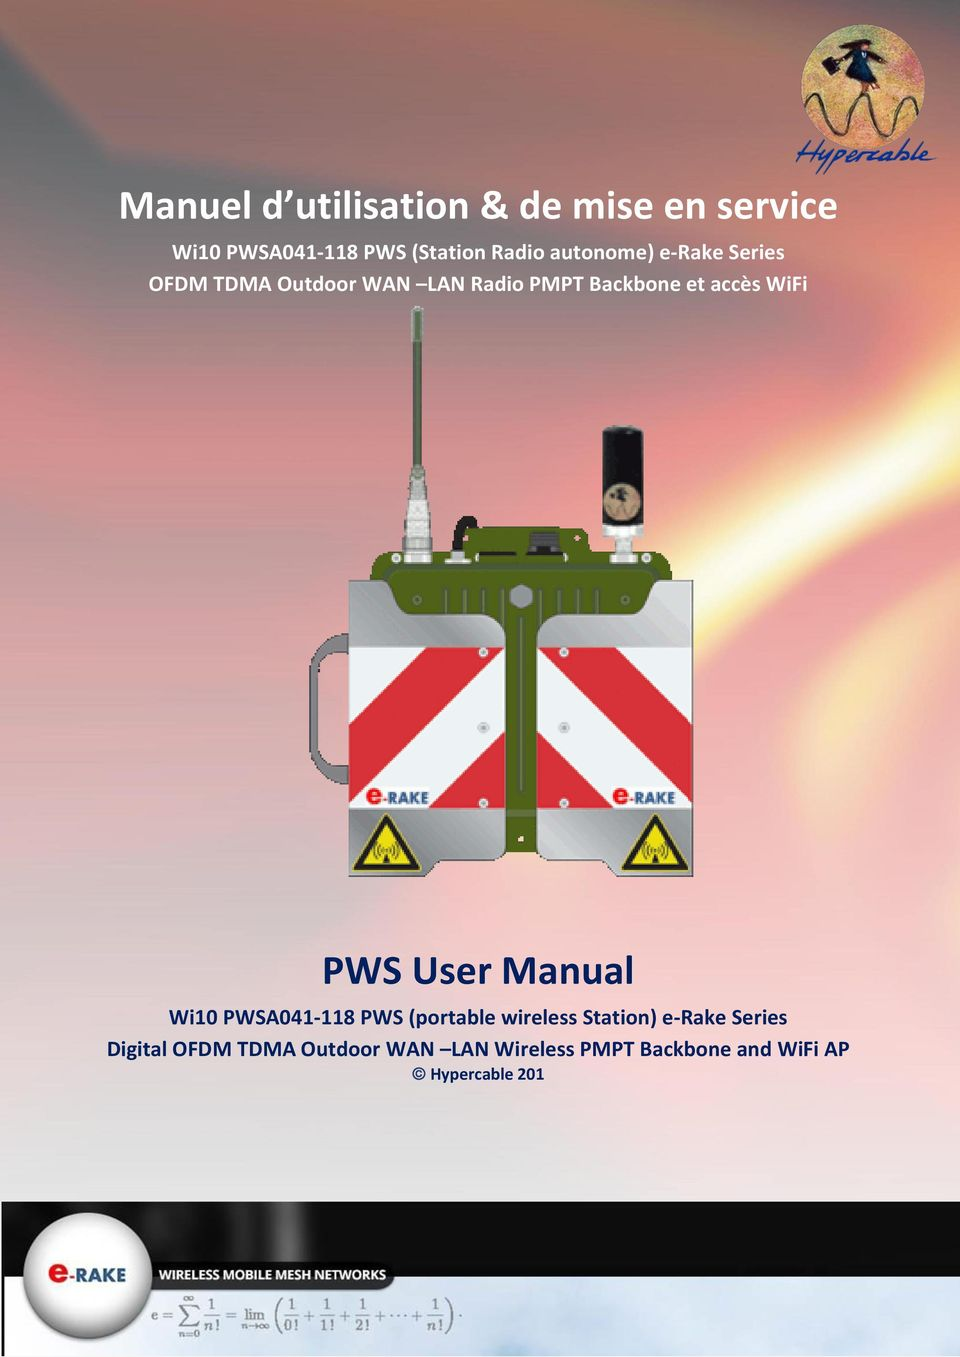 WiFi PWS User Manual Wi10 PWSA041-118 PWS (portable wireless Station) e-rake